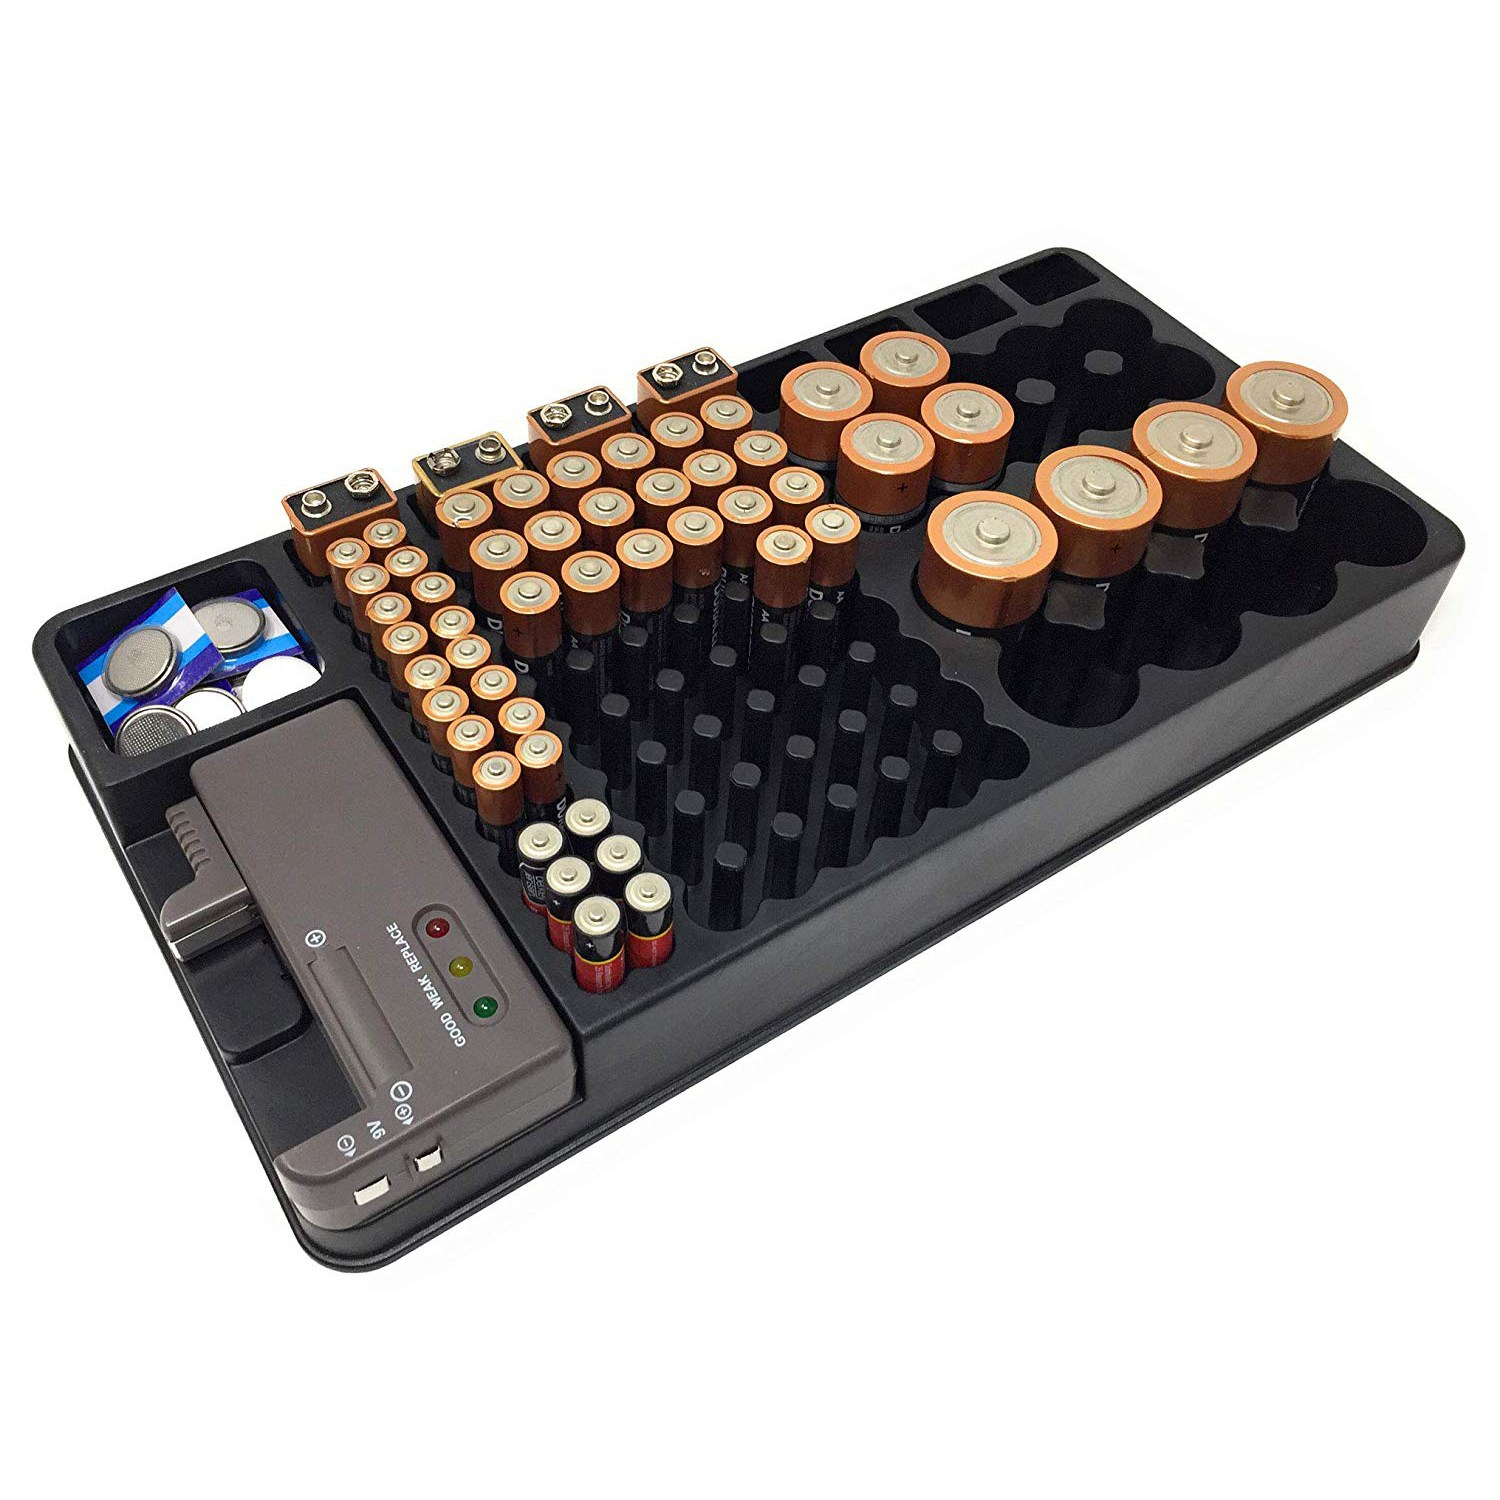 TOP Battery Storage Organizer Holder with Tester Battery Caddy Rack Case Box Holders Including Battery Checker